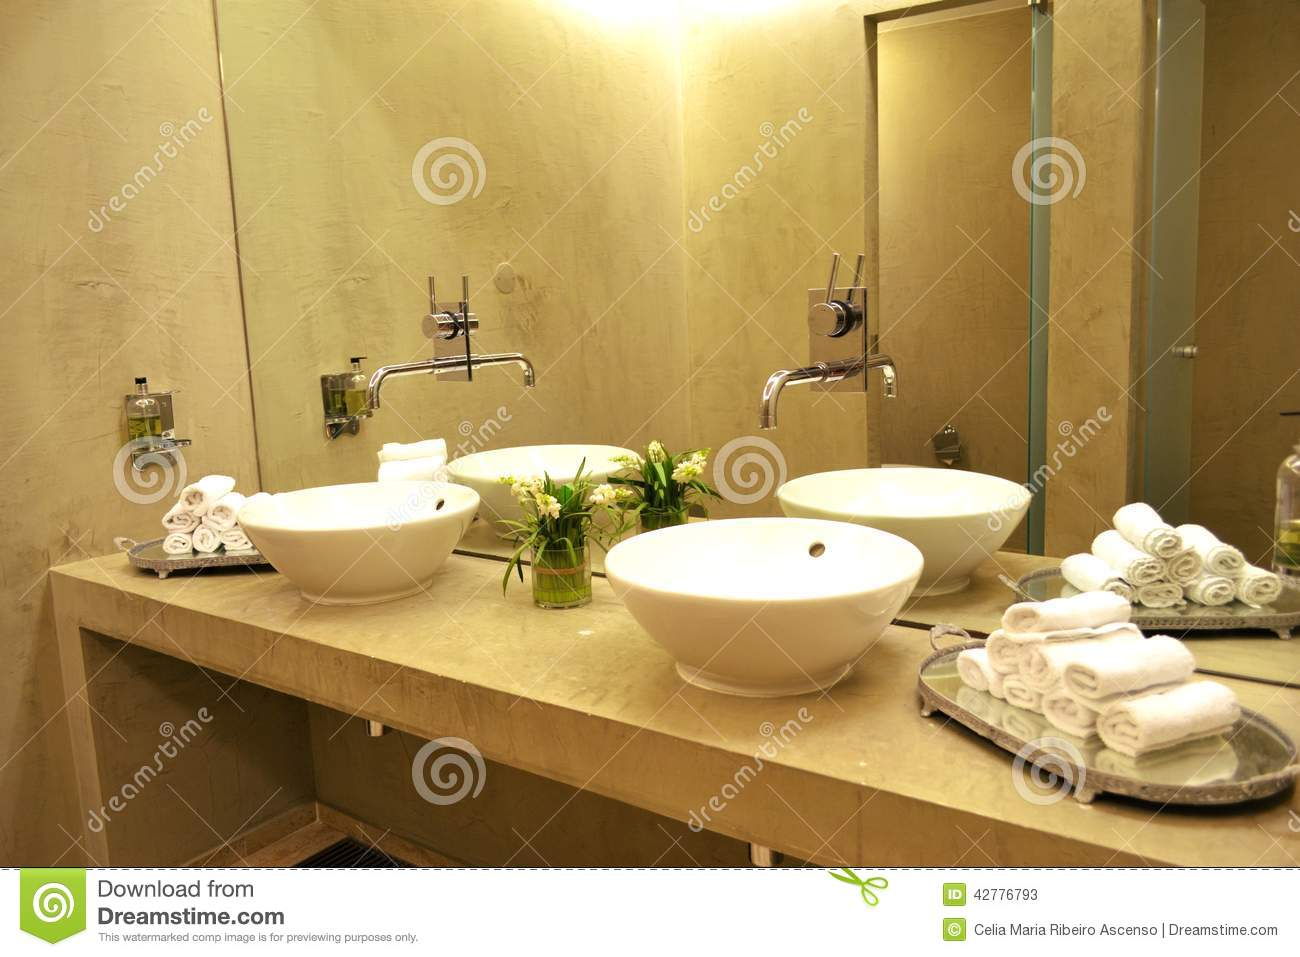 Sinks And Taps Toilet SPA Bathroom Stock Photo - Image: 42776793